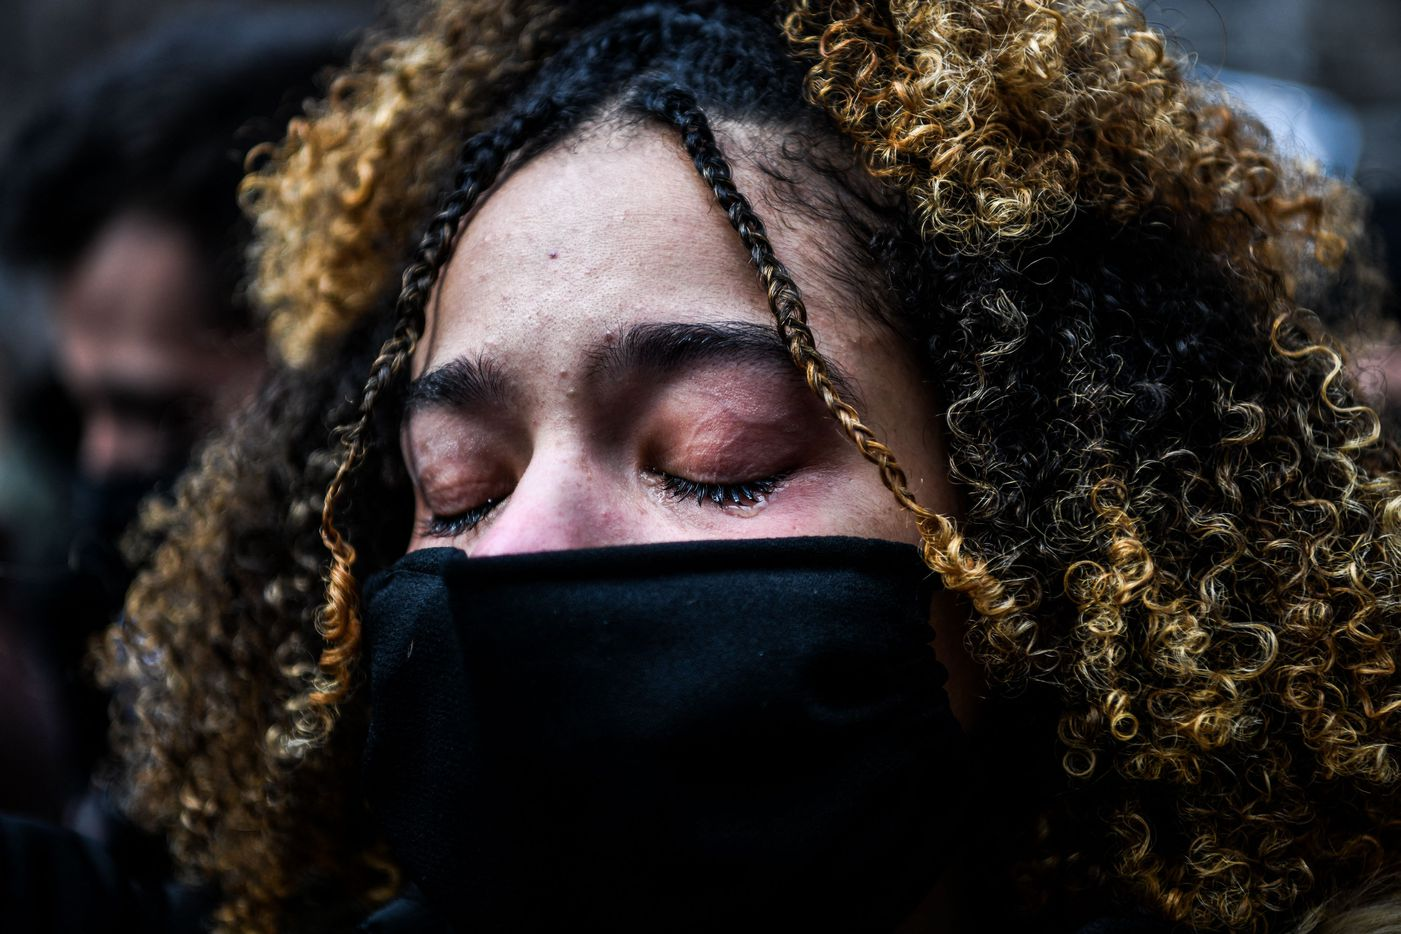 A woman cries as the verdict is announced in the trial of former police officer Derek Chauvin outside the Hennepin County Government Center in Minneapolis, Minnesota on April 20, 2021. - Sacked police officer Derek Chauvin was convicted of murder and manslaughter on April 20 in the death of African-American George Floyd in a case that roiled the United States for almost a year, laying bare deep racial divisions.